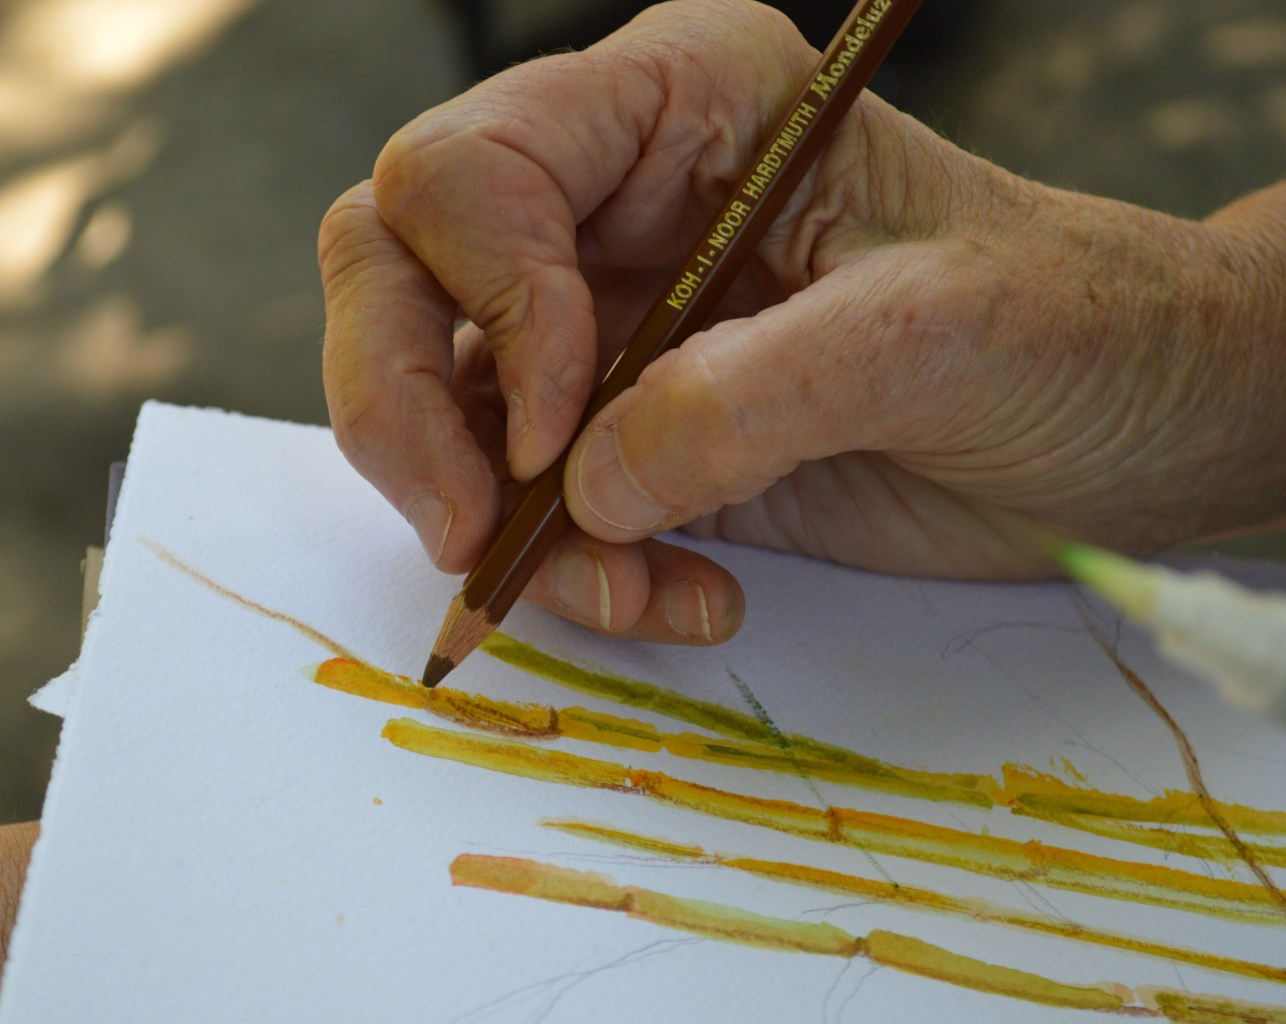 A close-up of a hand holding a colored pencil, drawing stalks of bamboo on paper.